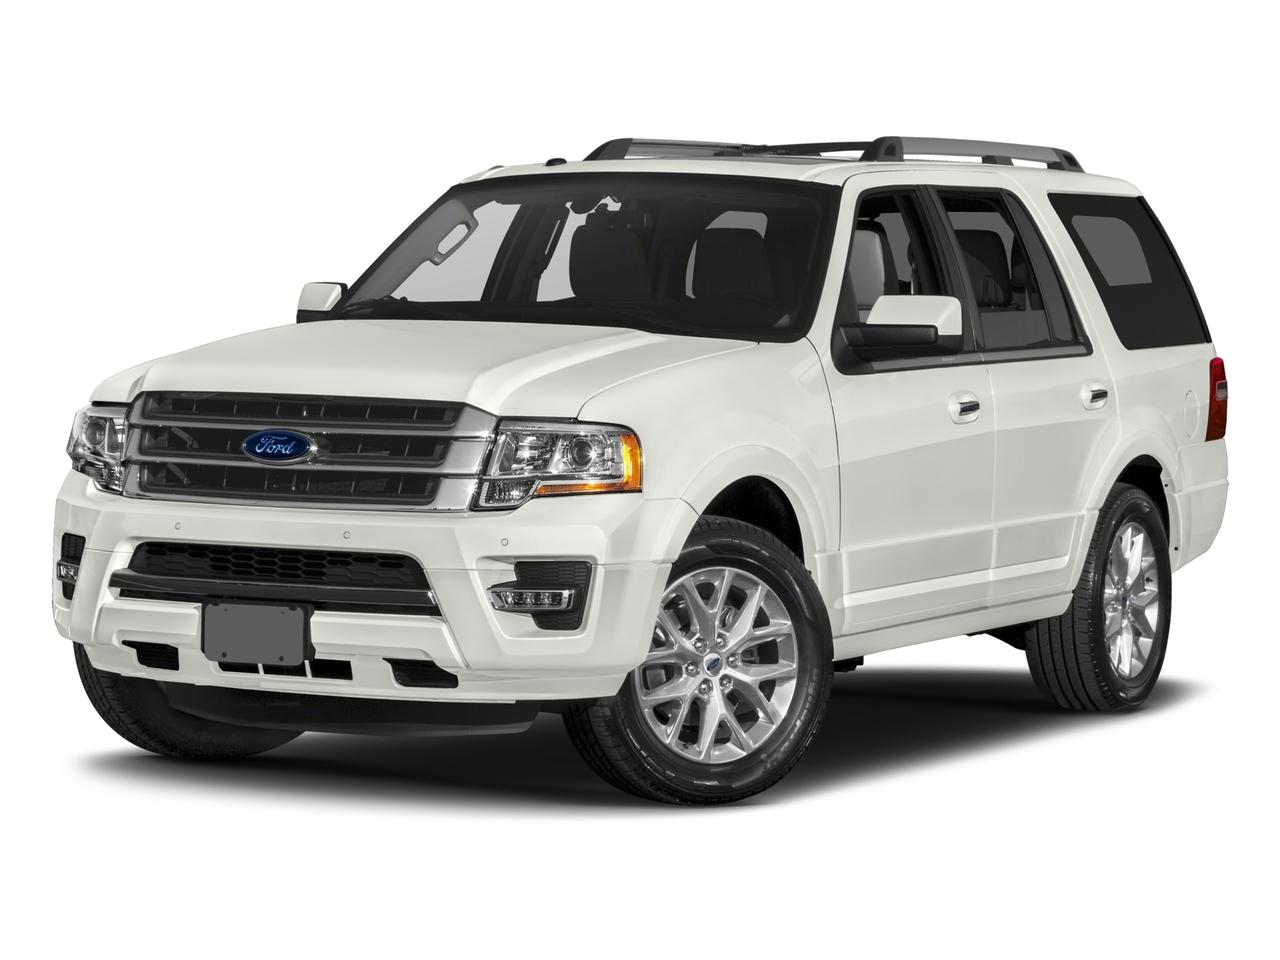 2017 Ford Expedition Vehicle Photo in Kansas City, MO 64114